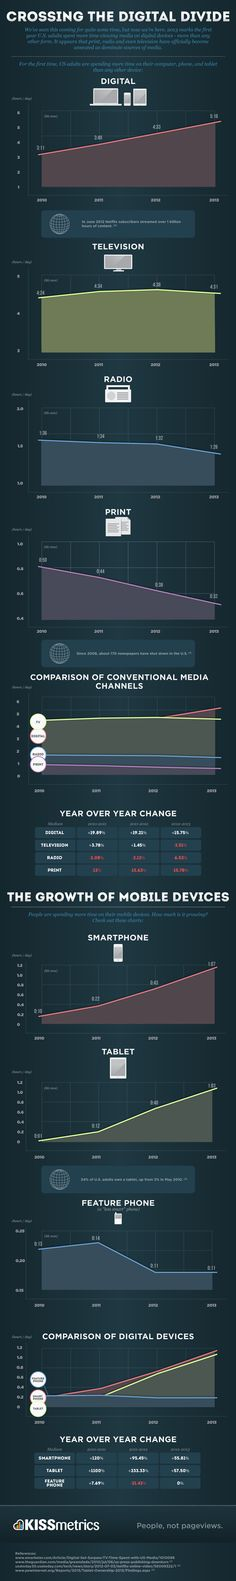 Infographic: Crossing the Digital Divide